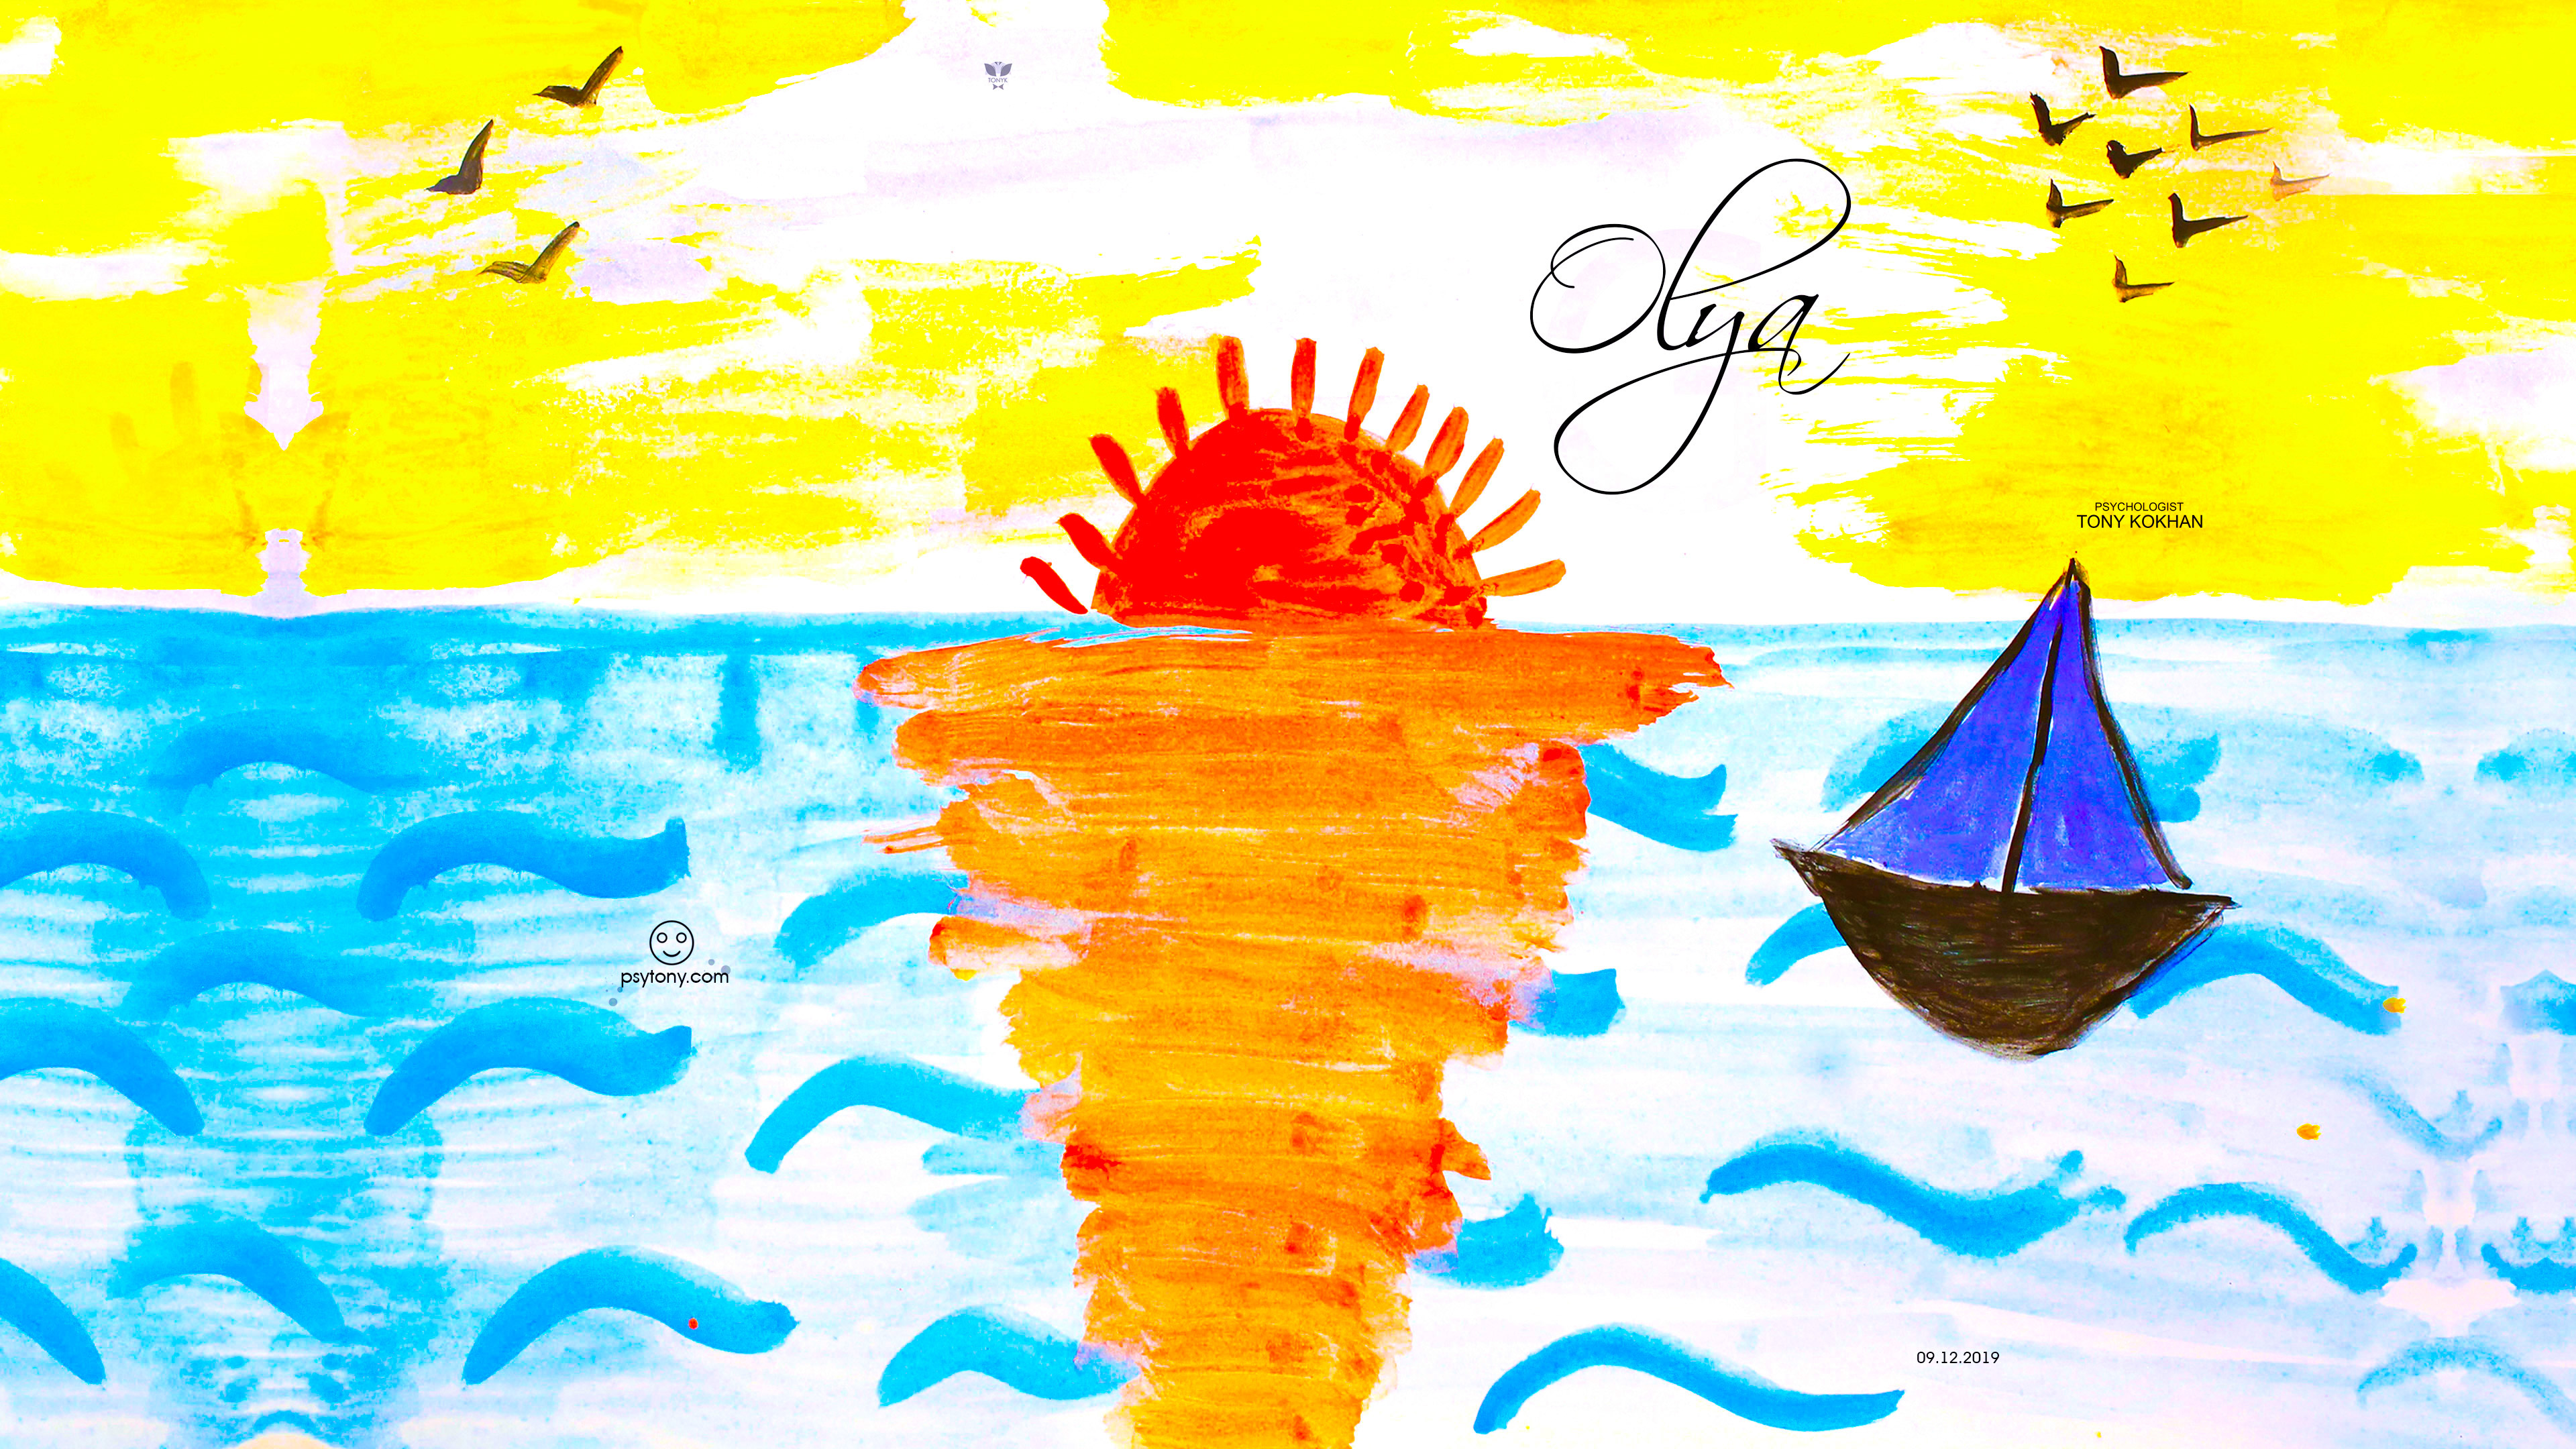 Olya-Soul-Girl-Sunset-Sea-Sun-Reflection-Birds-Sail-Travel-Nature-Arts-Picture-Gouache-Art-2019-Multicolors-4K-Wallpapers-by-Psychologist-Tony-Kokhan-www.psytony.com-image